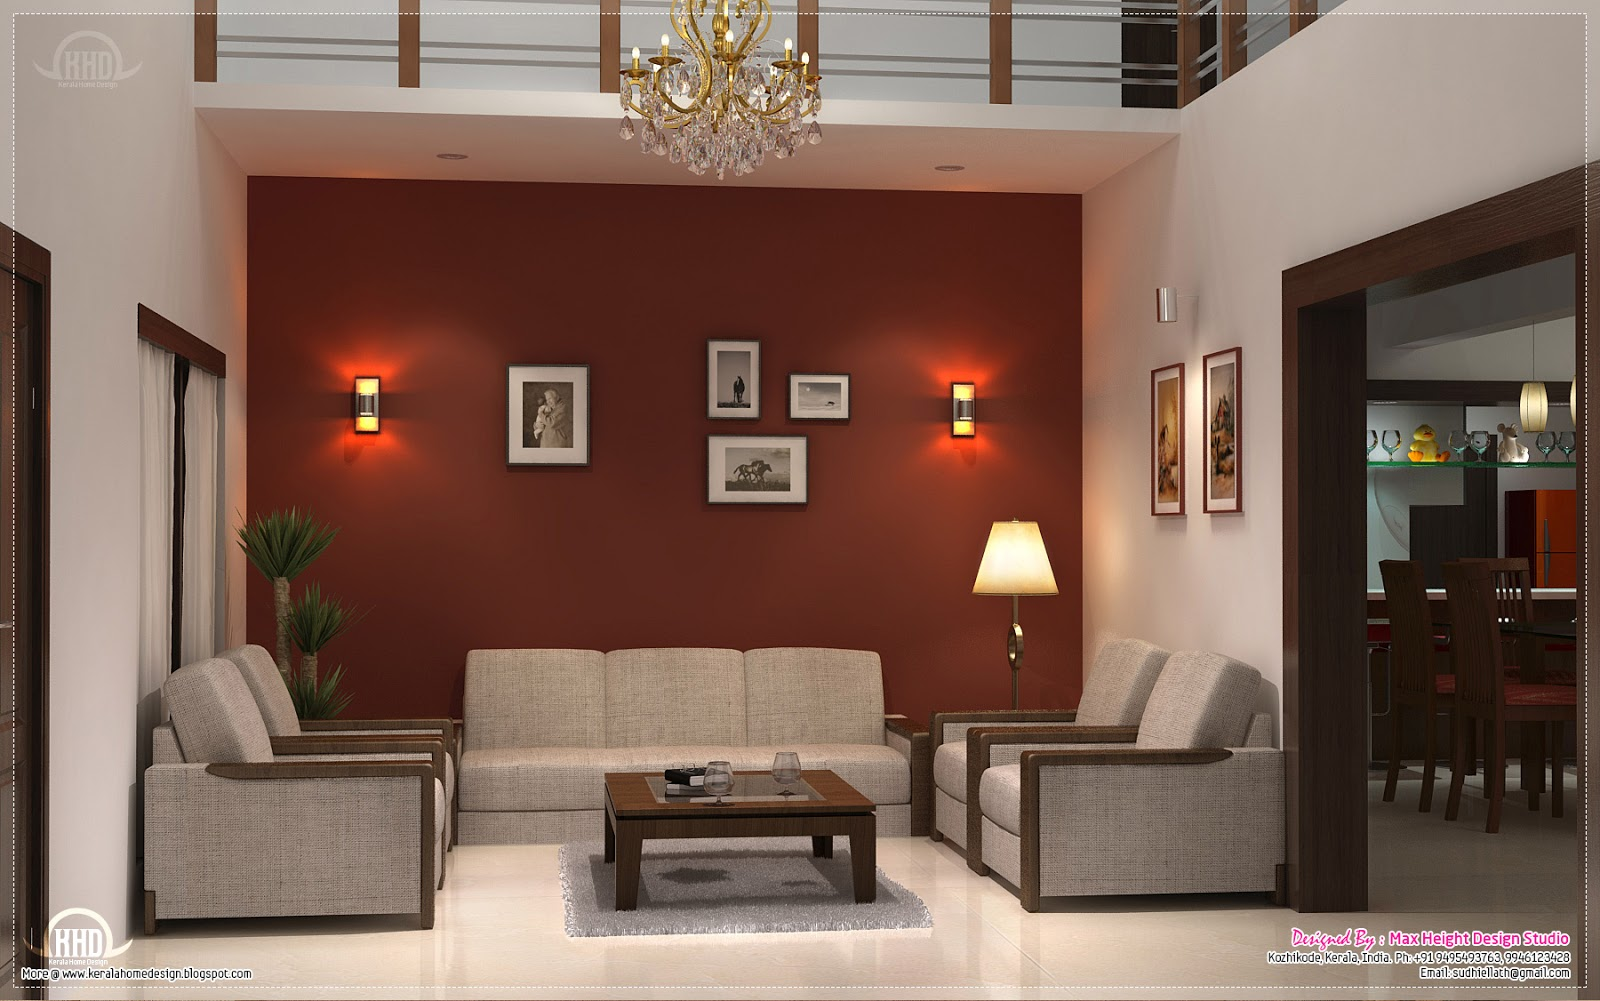 Home interior design ideas kerala home design and floor for Kerala homes interior designs